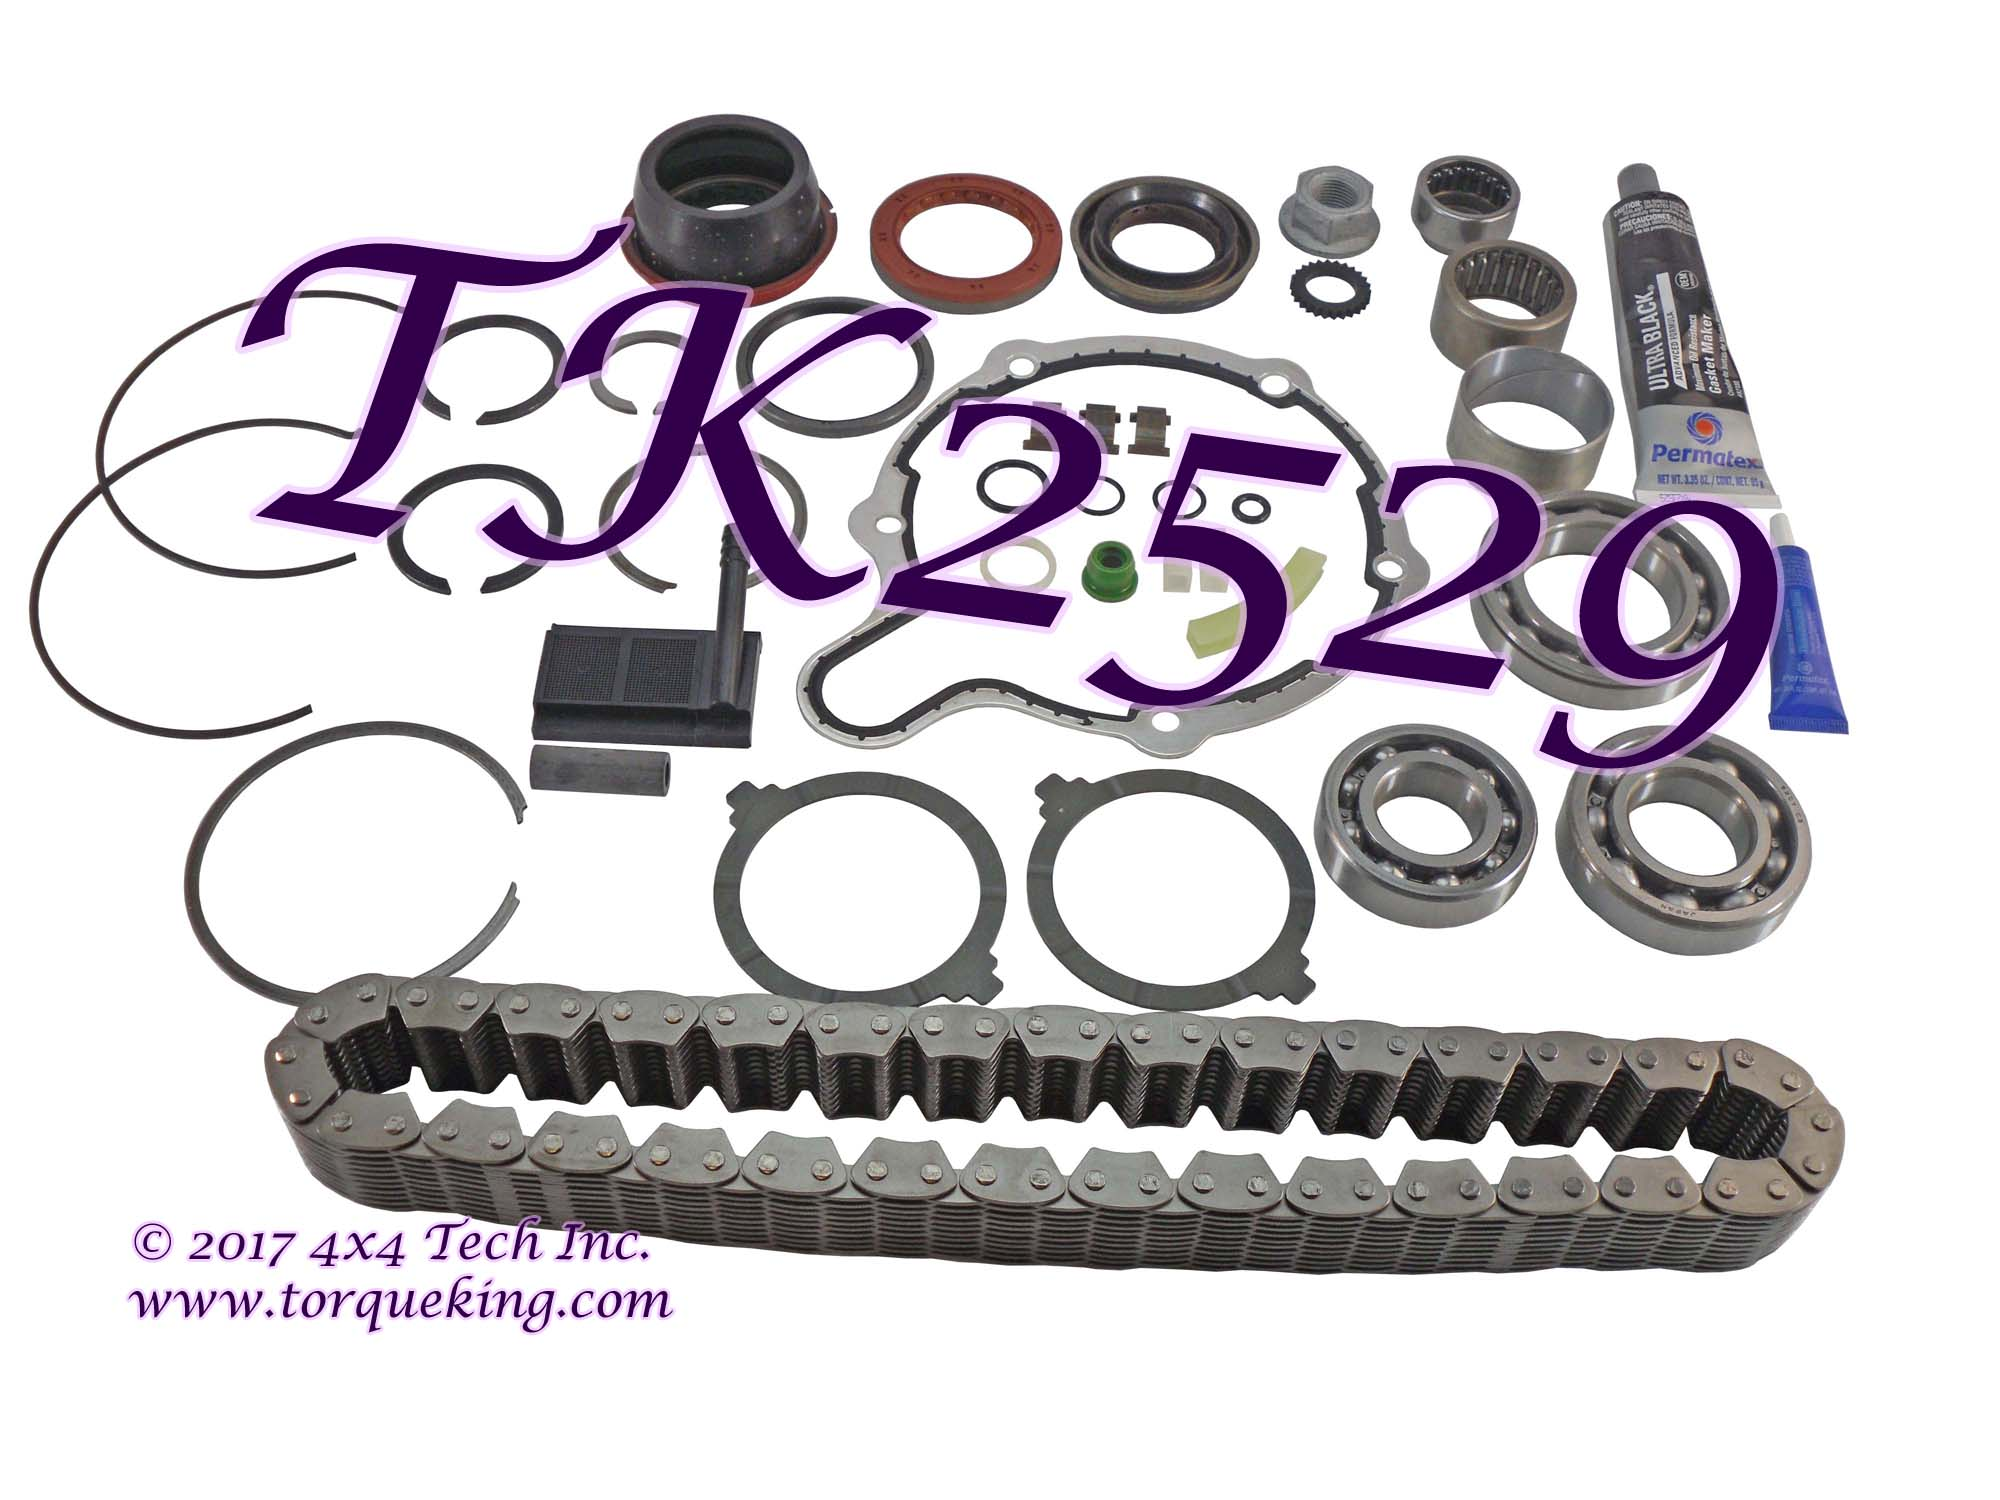 hight resolution of tk2529 torque king transfer case master overhaul kit for 1998 1999 dodge ram 1500 new process np231dhd transfer case assembly numbers 52105021 and